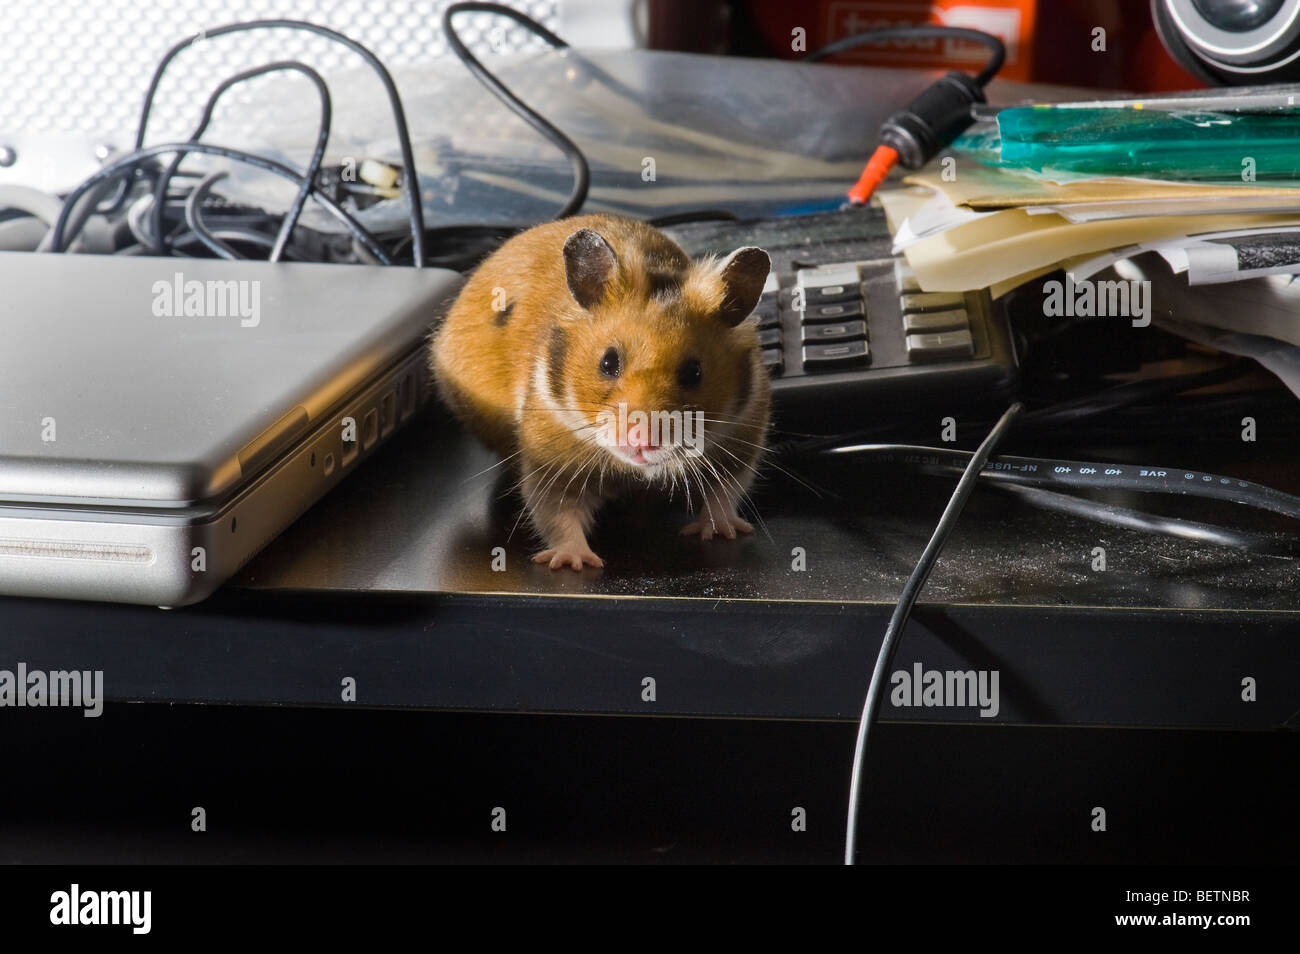 free-range free range HAMSTER bureau attitude desk PC computer mac kable caught run running no cage table goldhamster - Stock Image